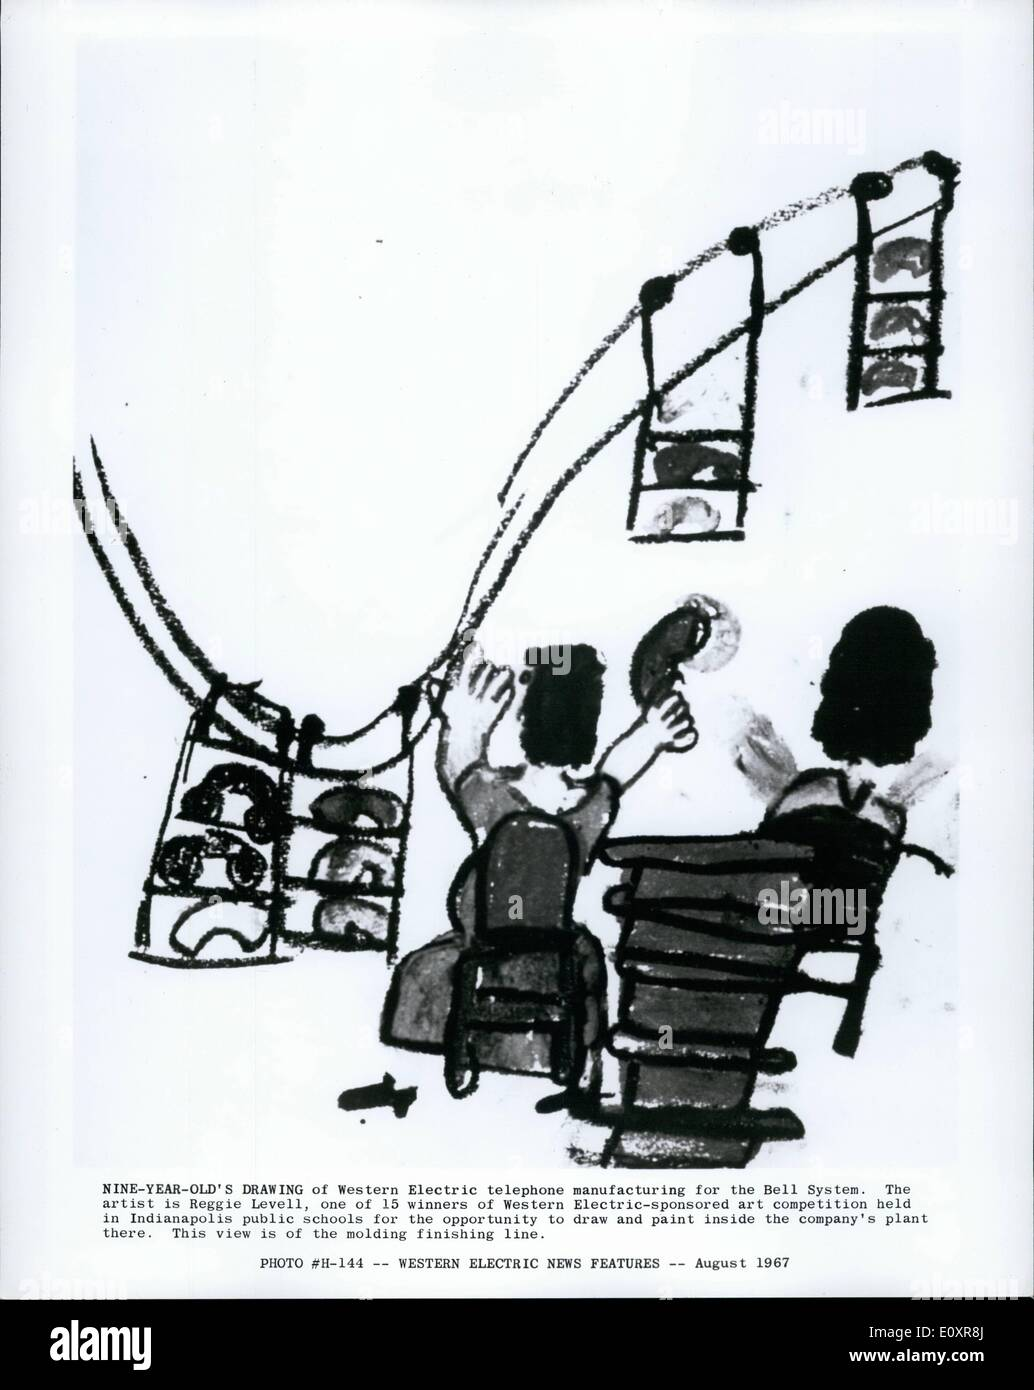 Aug. 08, 1967 - Western Electric News Features.:Nine Year old's drawing of Western Electric telephone manufacturing - Stock Image